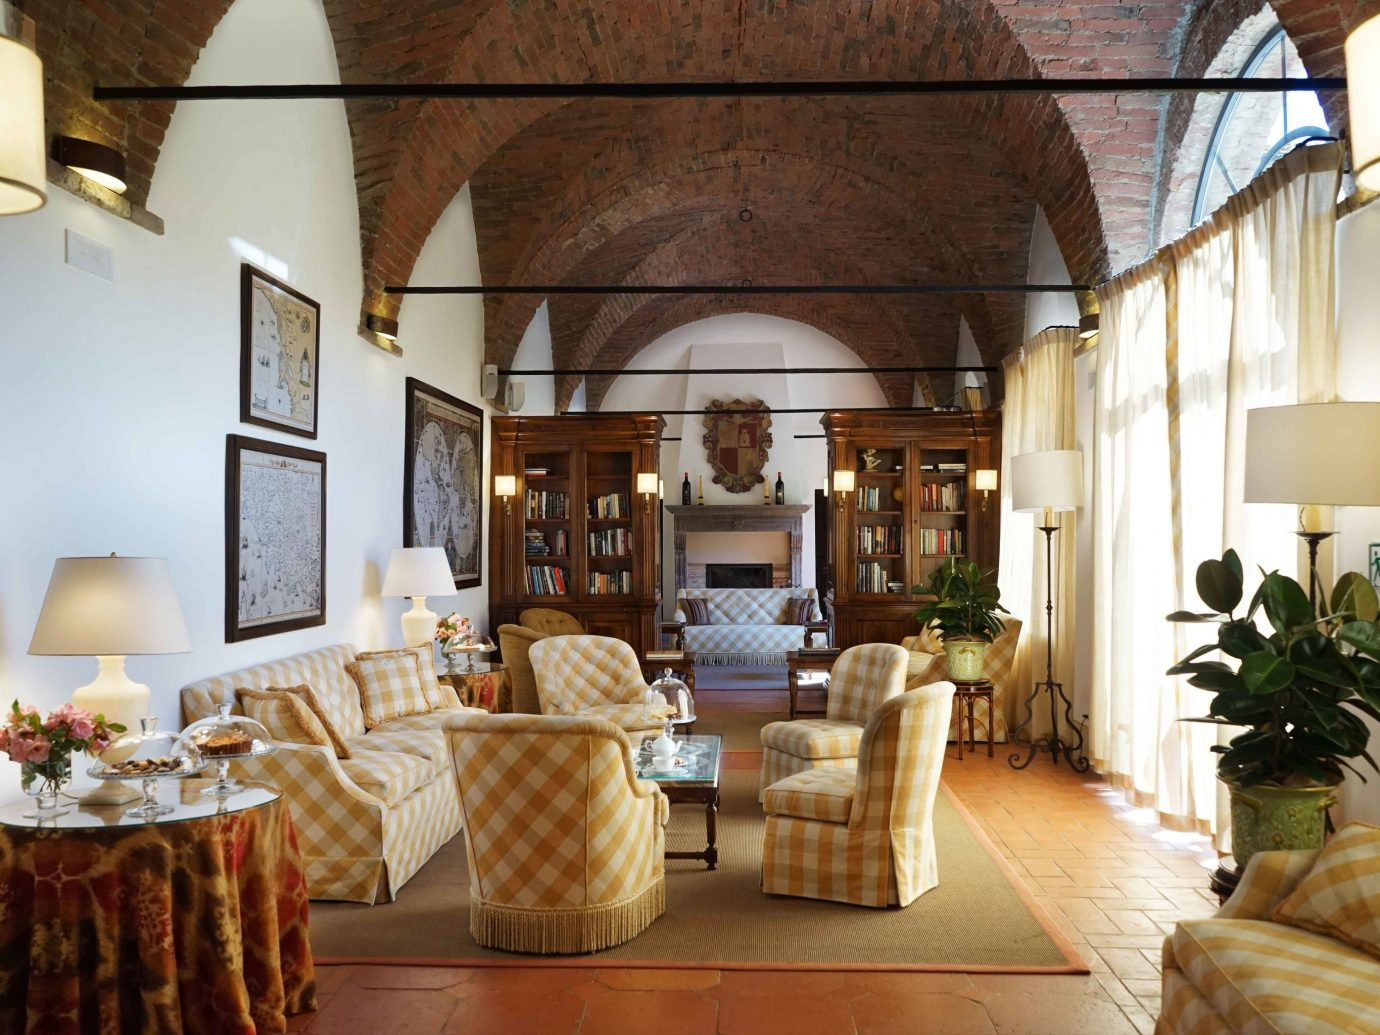 europe Hotels Italy Romance indoor Living room floor interior design furniture living room Fireplace ceiling home estate area decorated